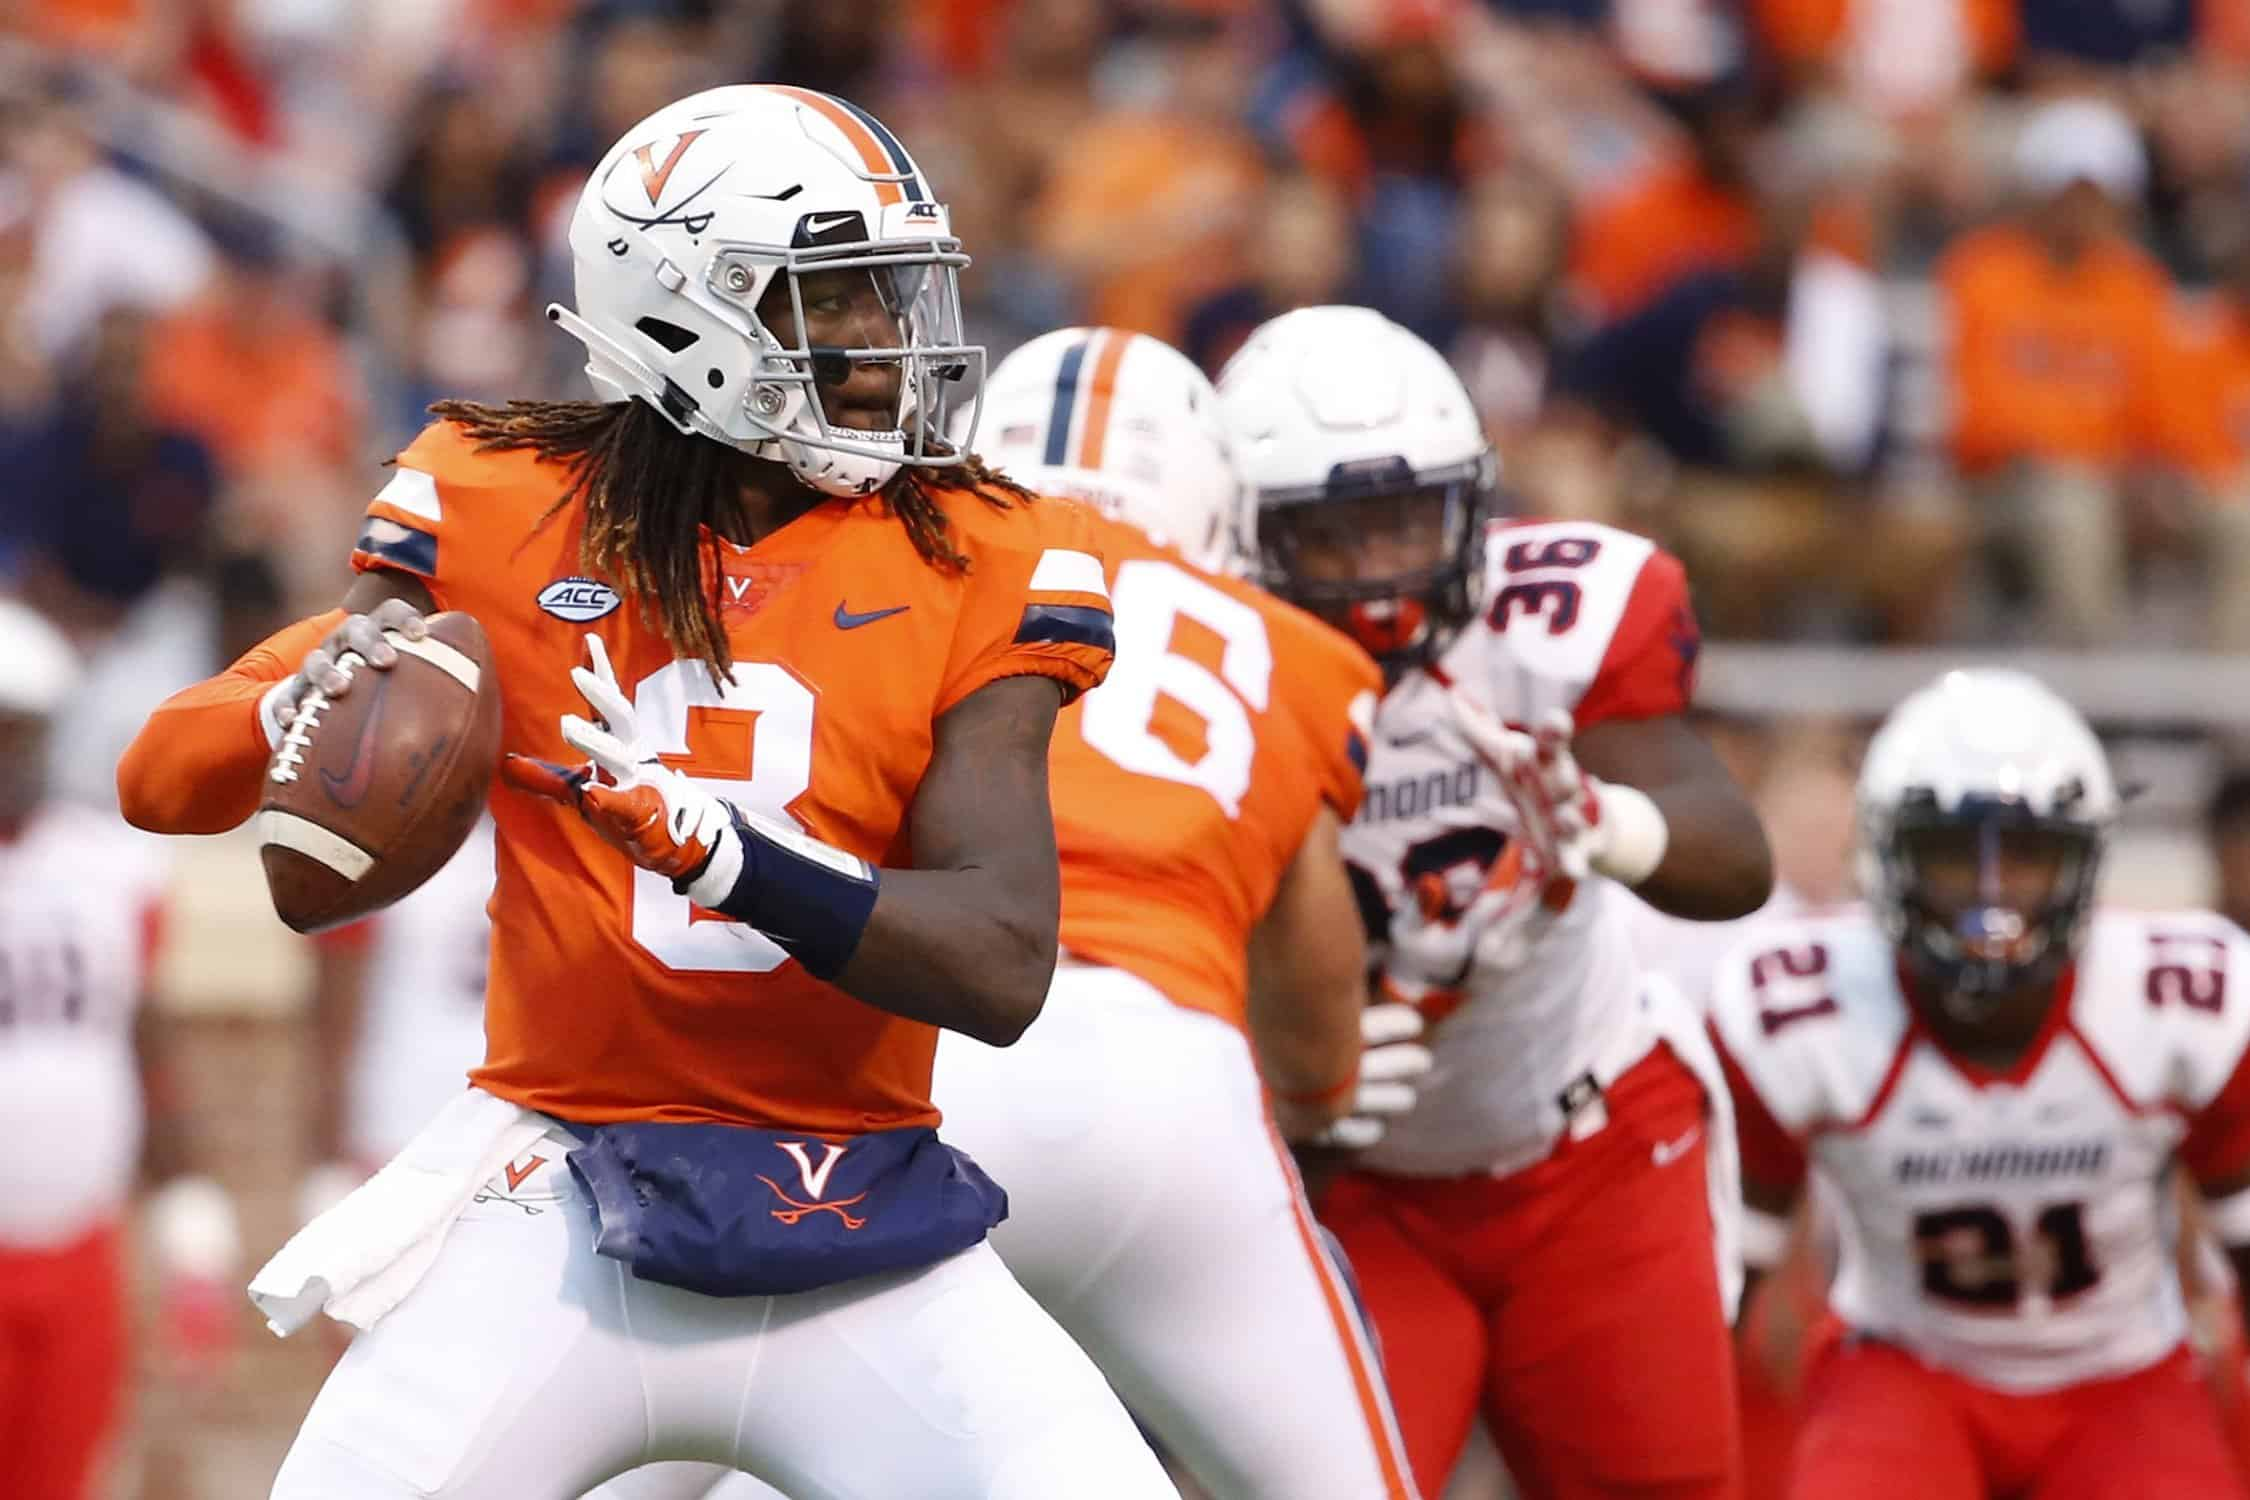 2020 NFL Draft: Bryce Perkins' path to prominence fueled by